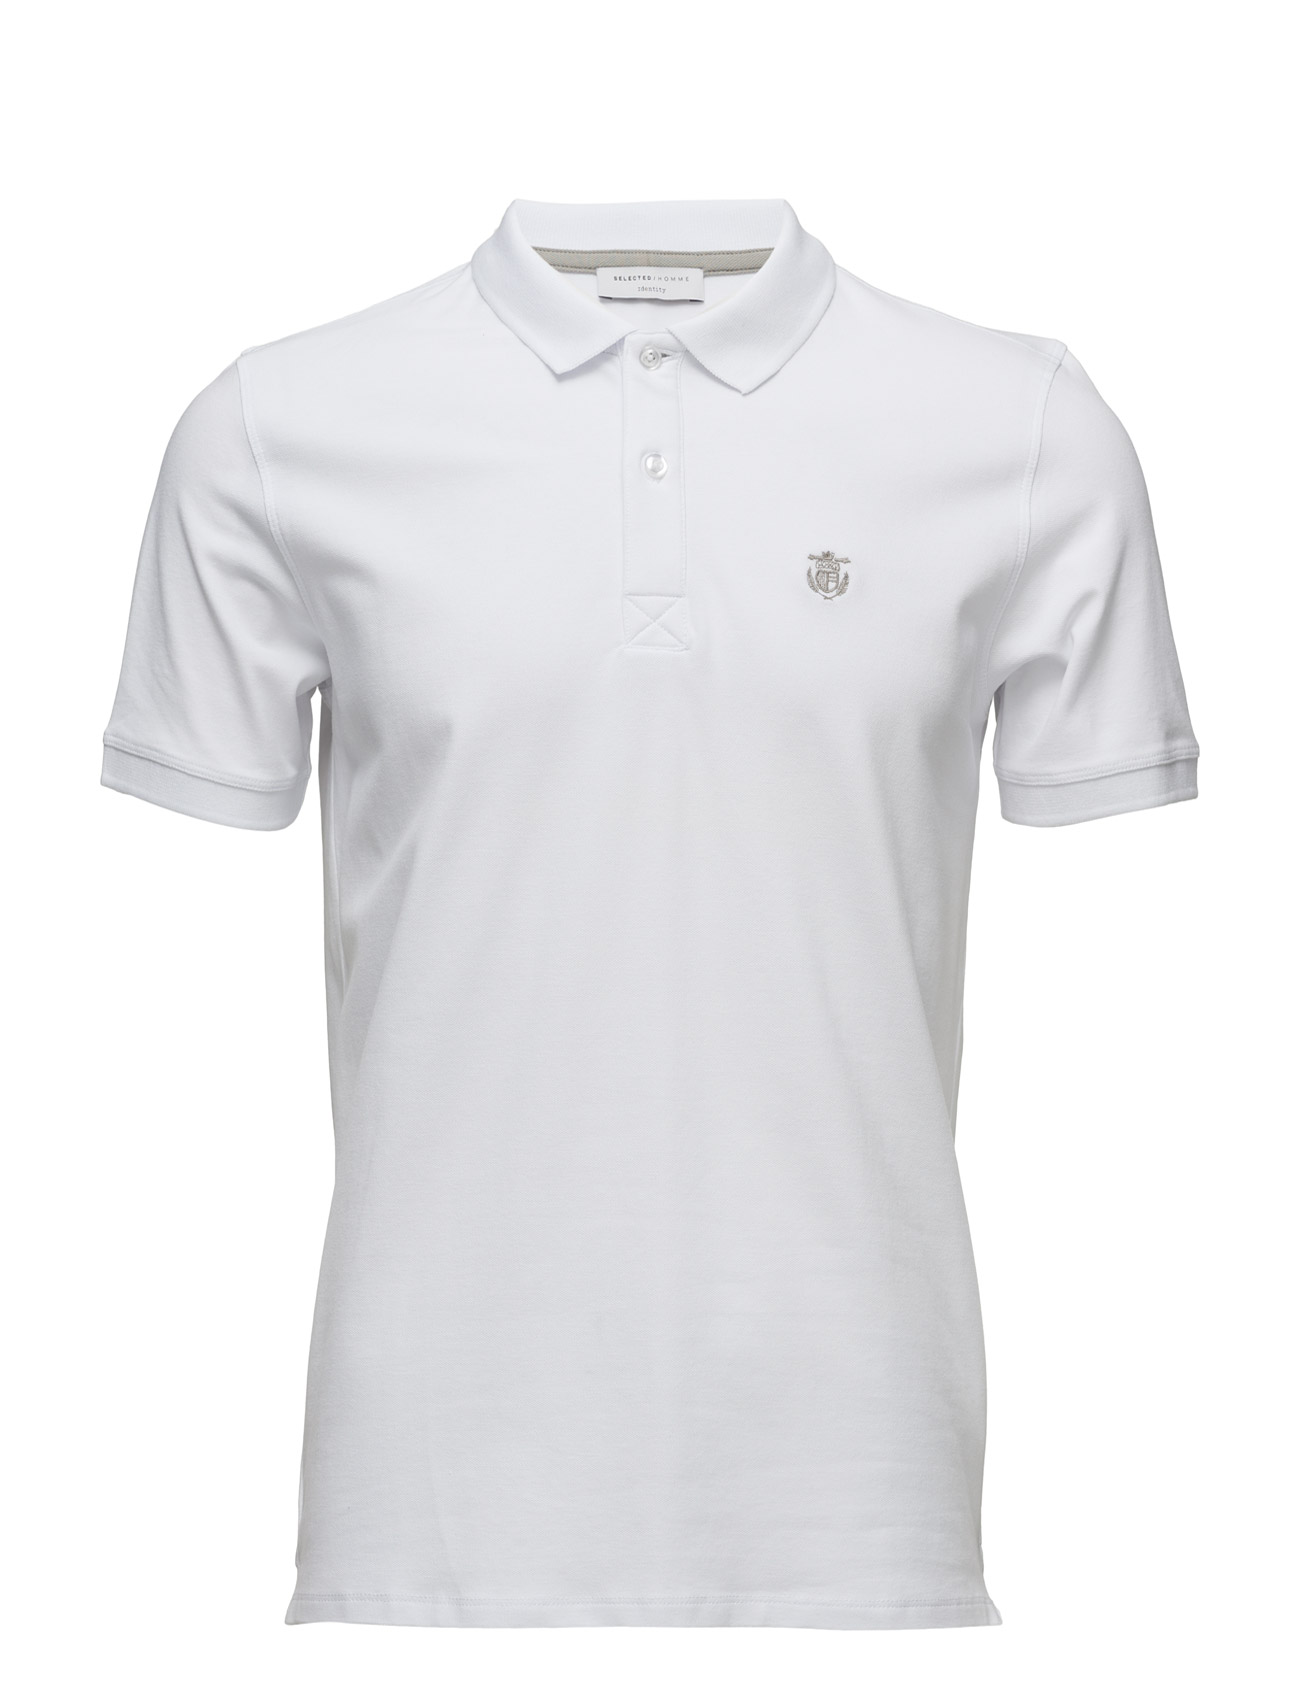 Shdaro Ss Embroidery Polo Noos Bright White 24 99 Selected